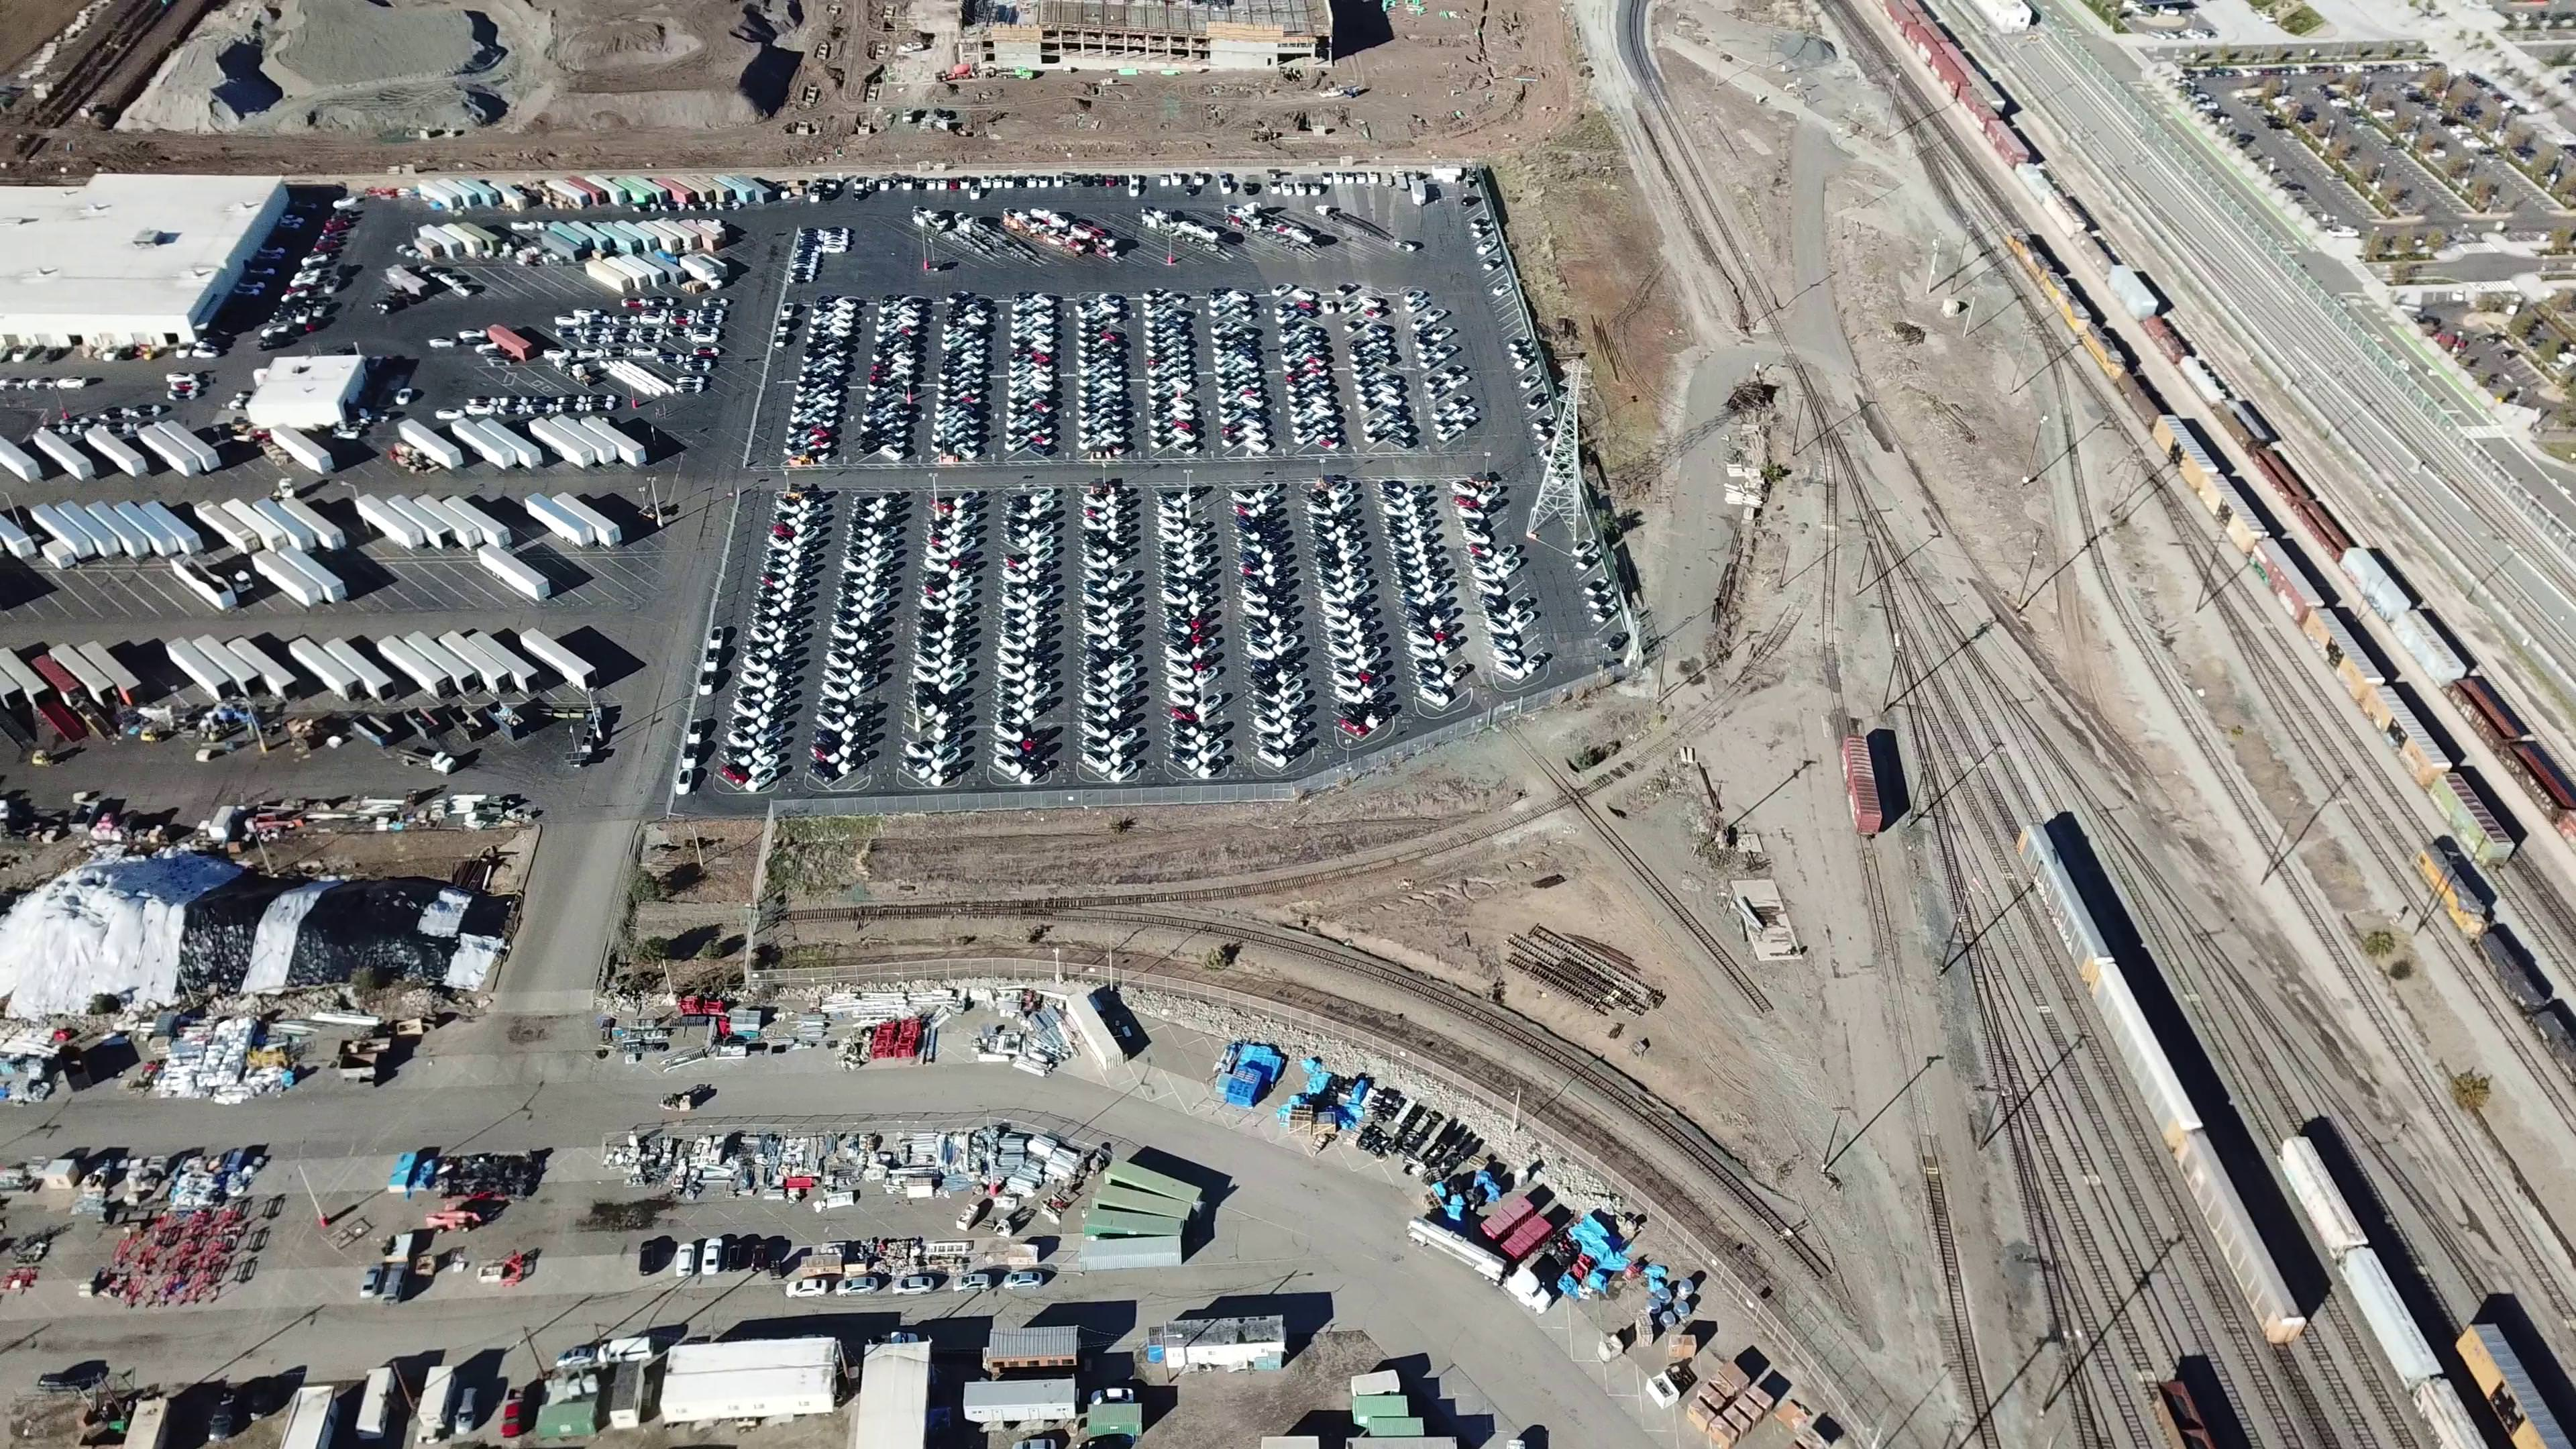 tesla-model-3-inventory-fremont-factory-drone-aerial-8